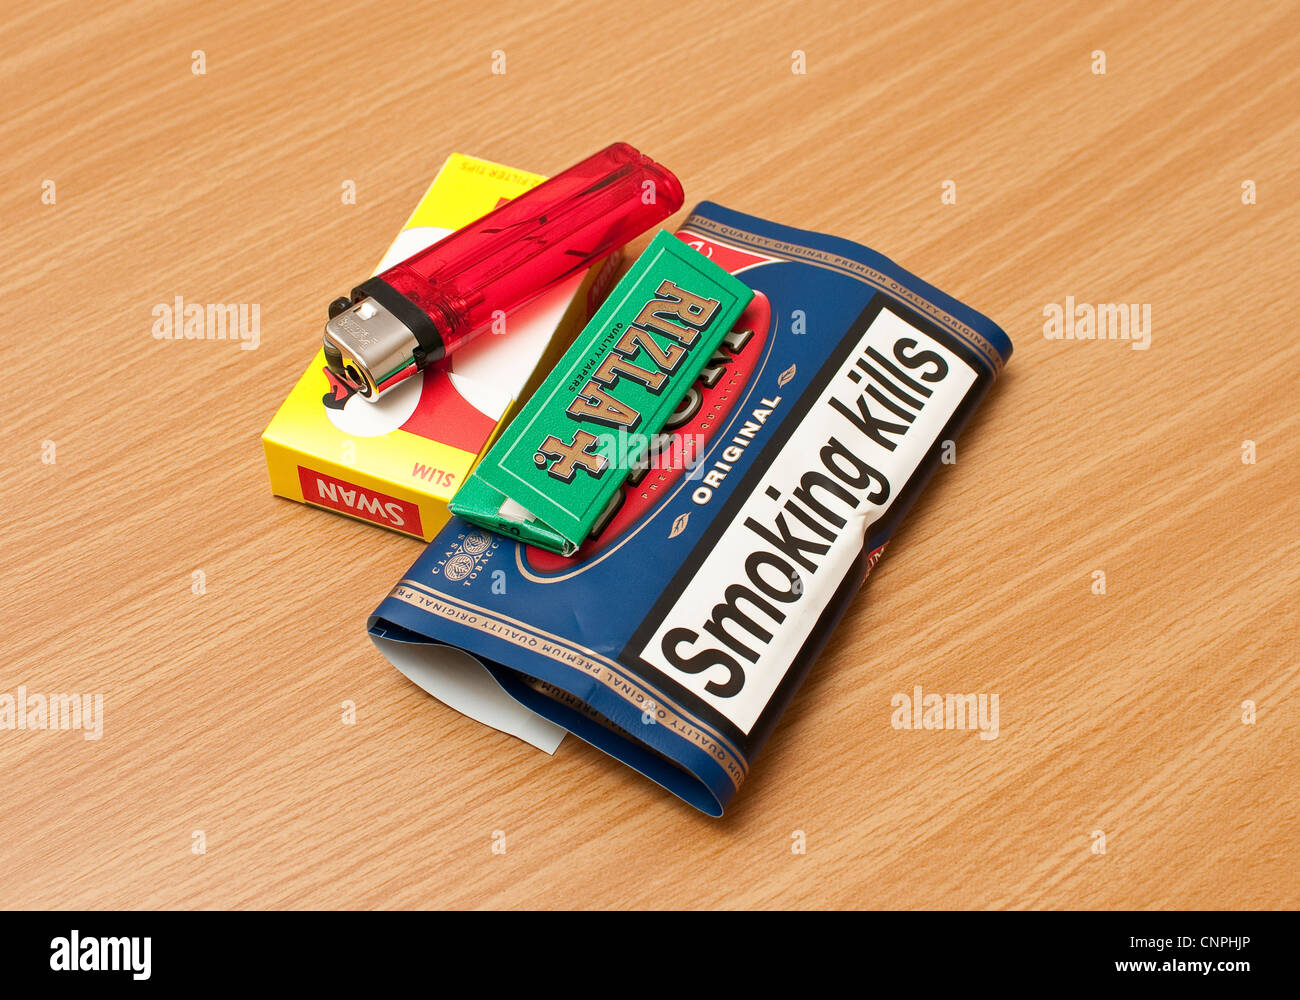 Rolling tobacco green rizla filters and lighter - Stock Image